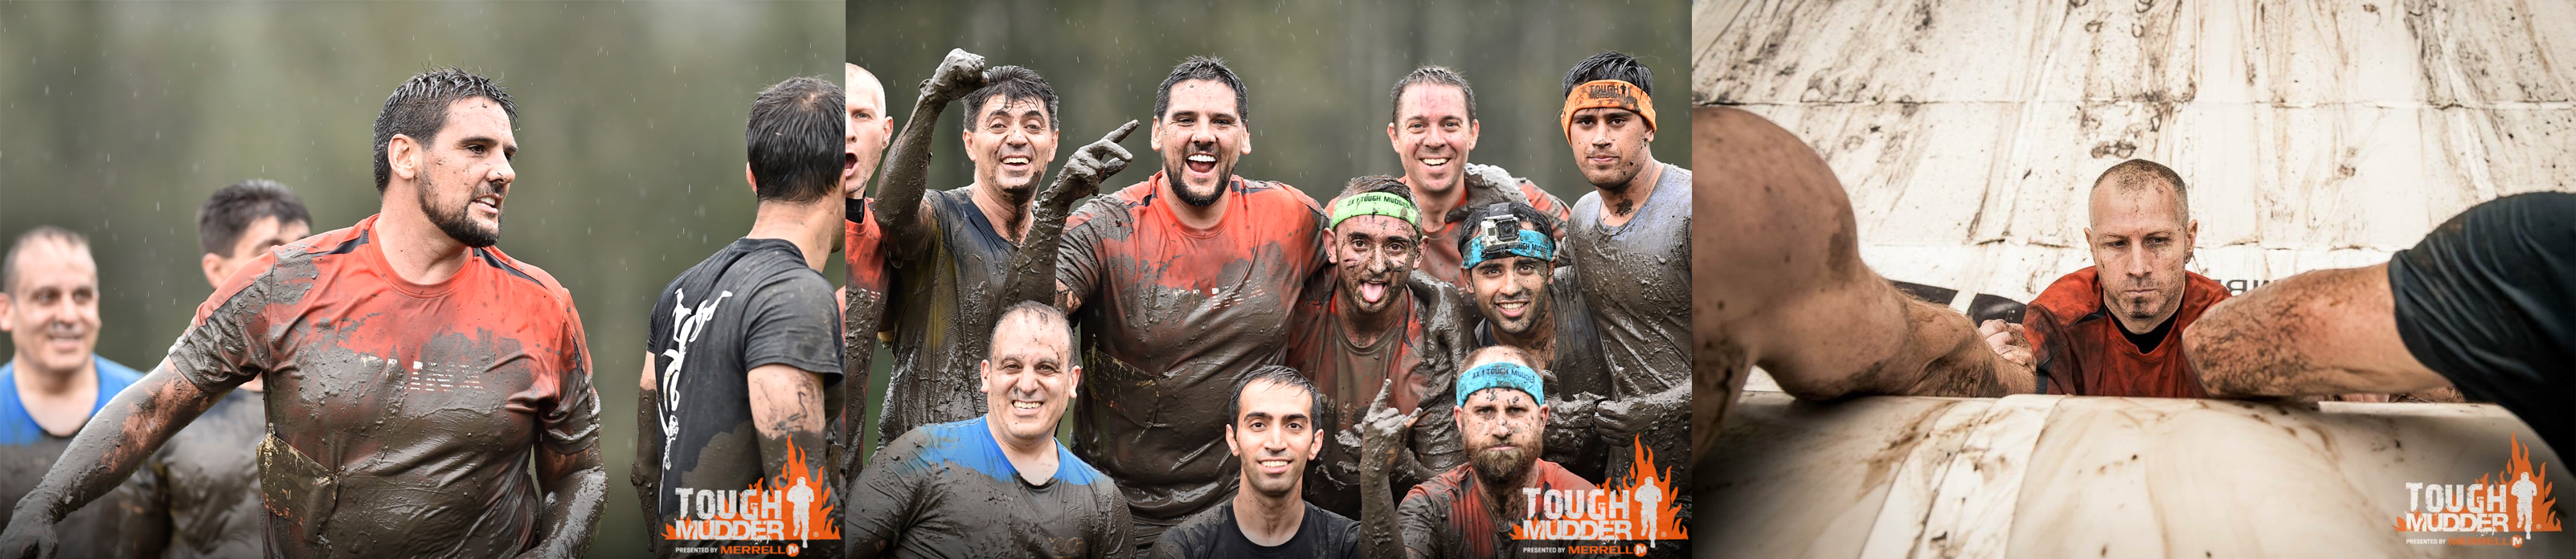 Tough Mudder 2016 - Outcomex Team in Action